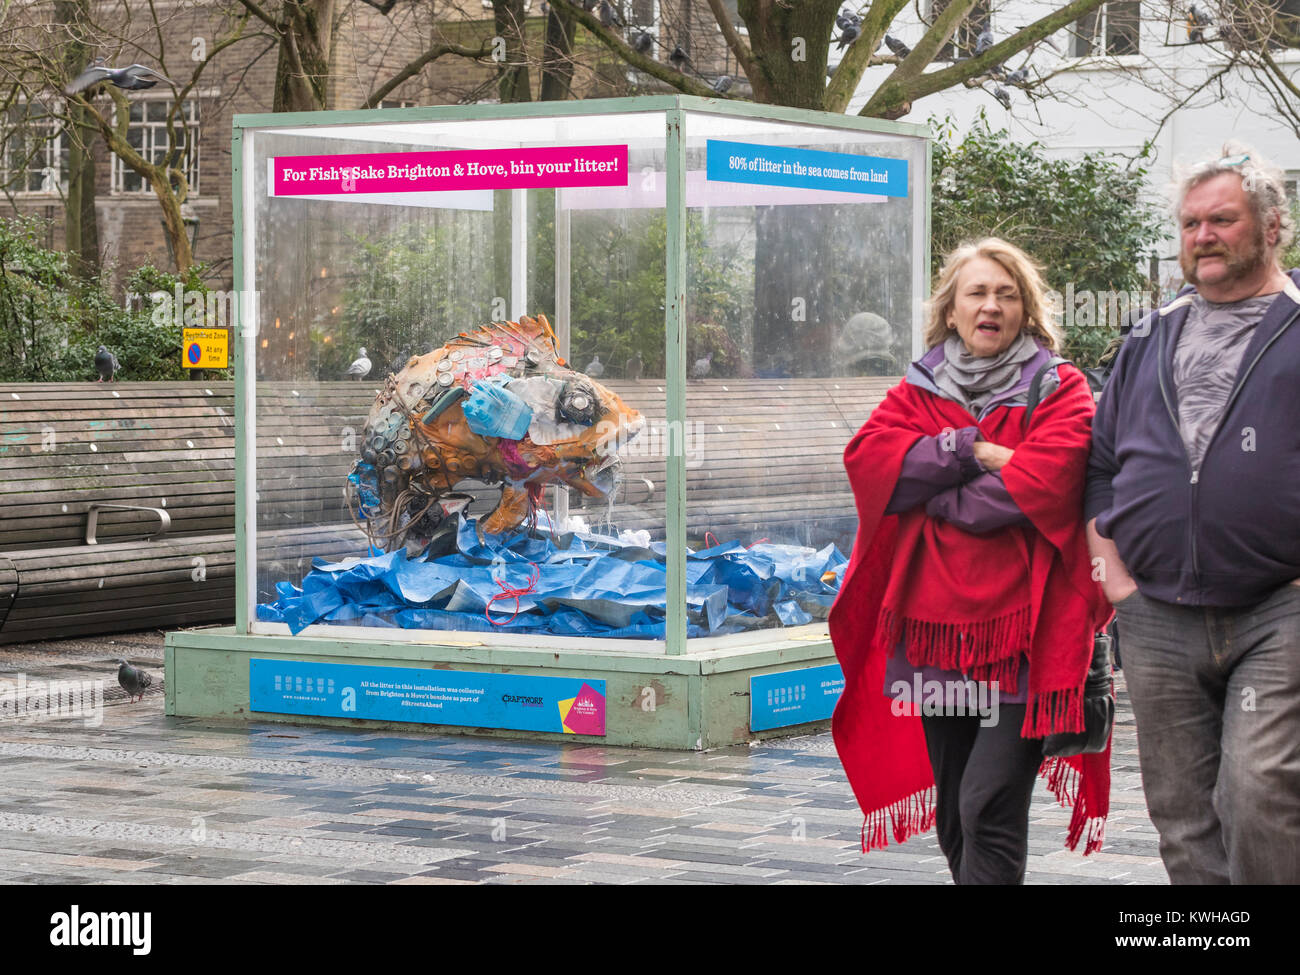 A fish made from litter collected from the beach in Brighton and Hove, on display in Brighton, East Sussex, England, Stock Photo